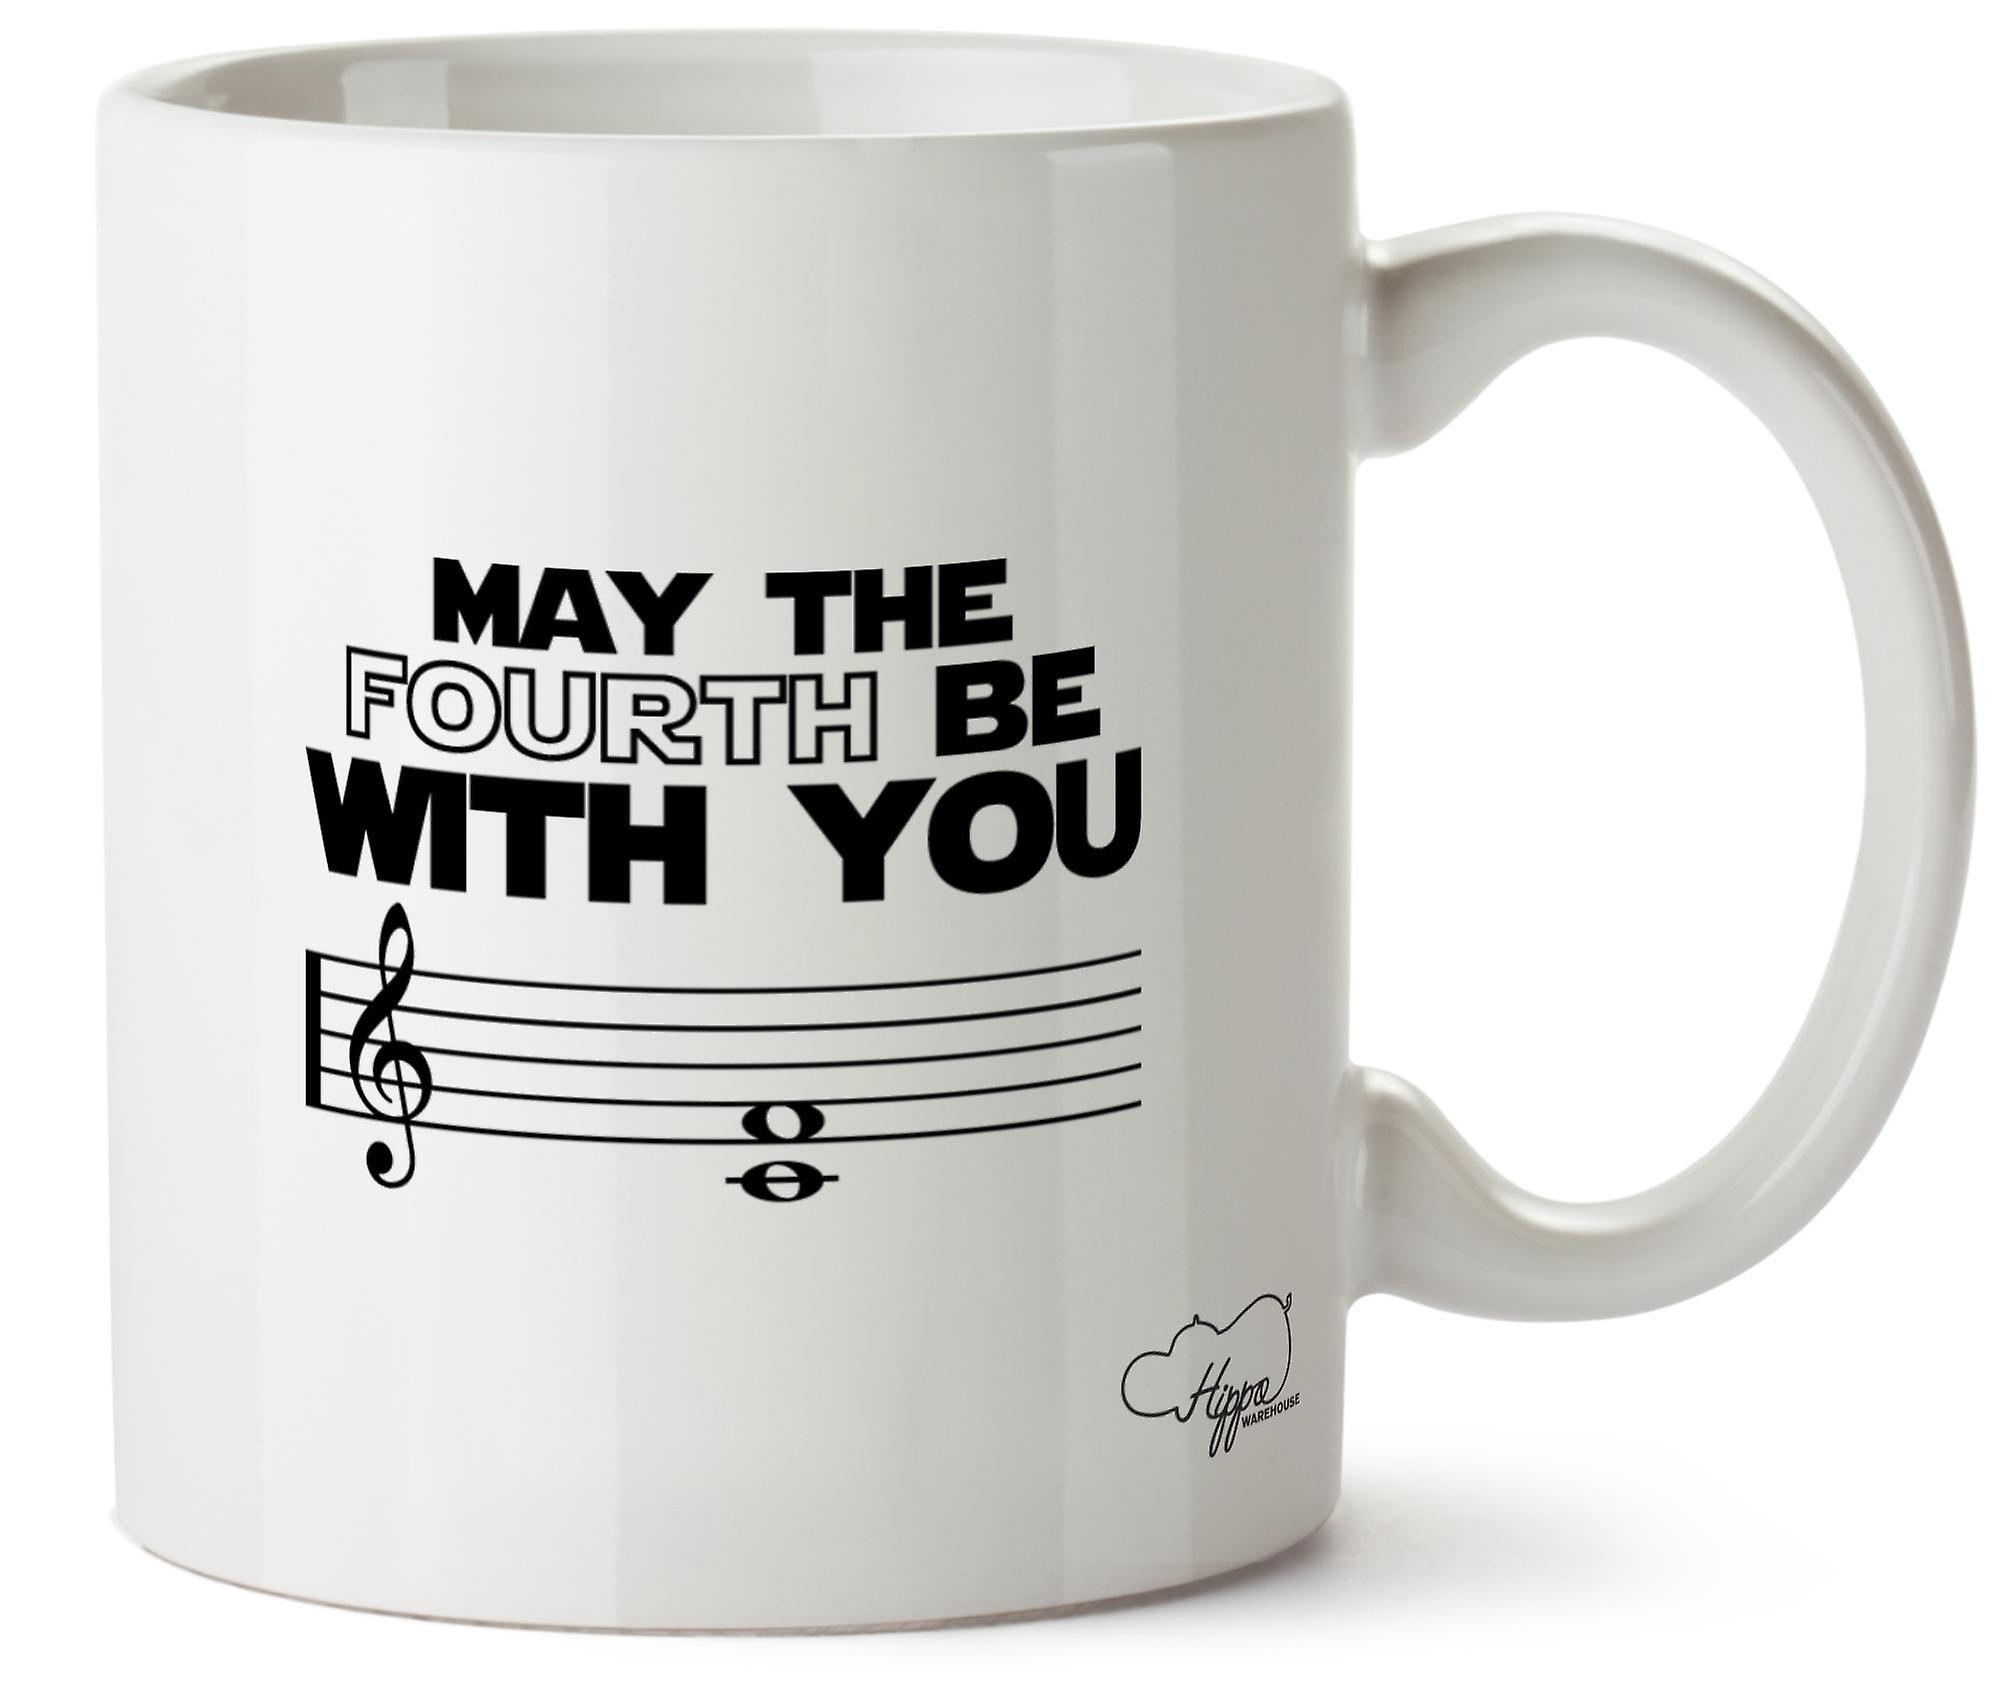 Hippowarehouse May The Fourth Be With You Printed Mug Cup Ceramic 10oz